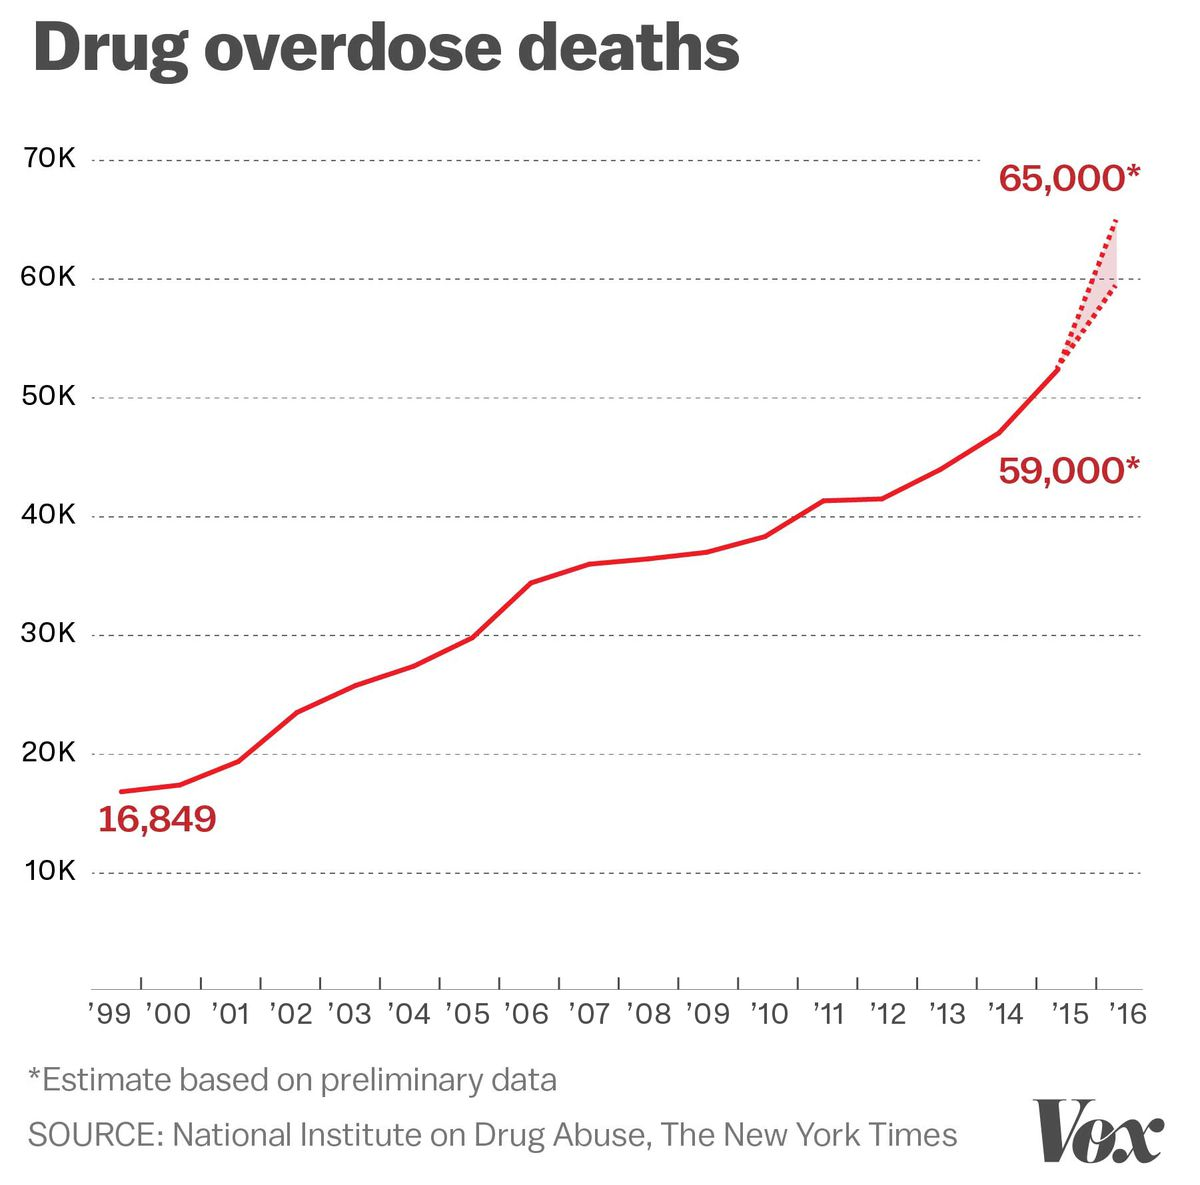 A chart of US drug overdoses going back to 1999.